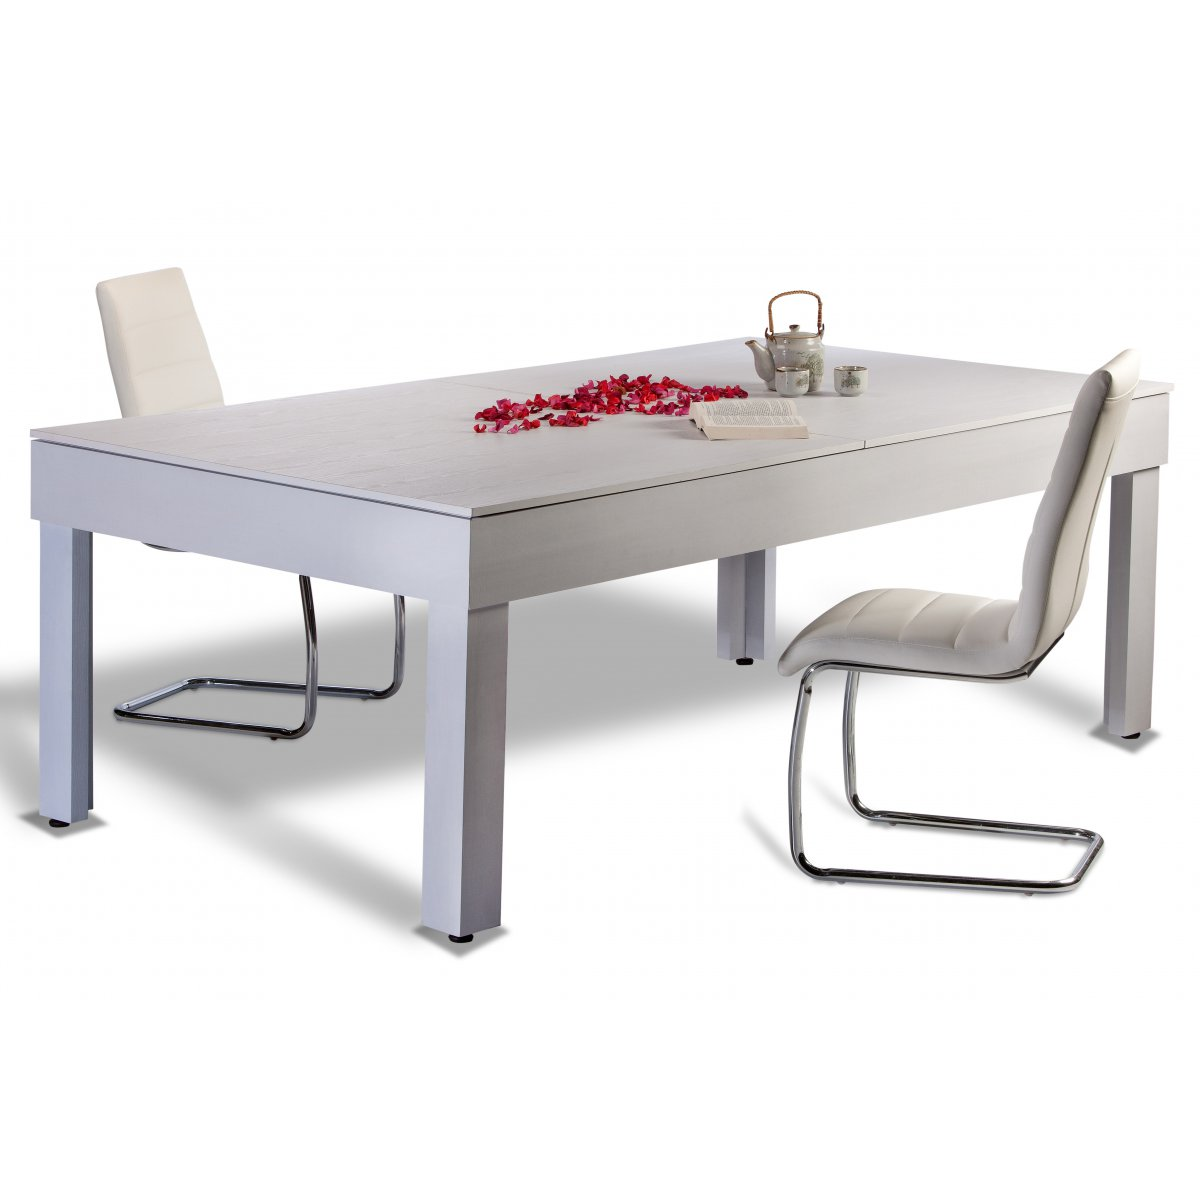 Billard transformable table manger - Billard transformable table ...